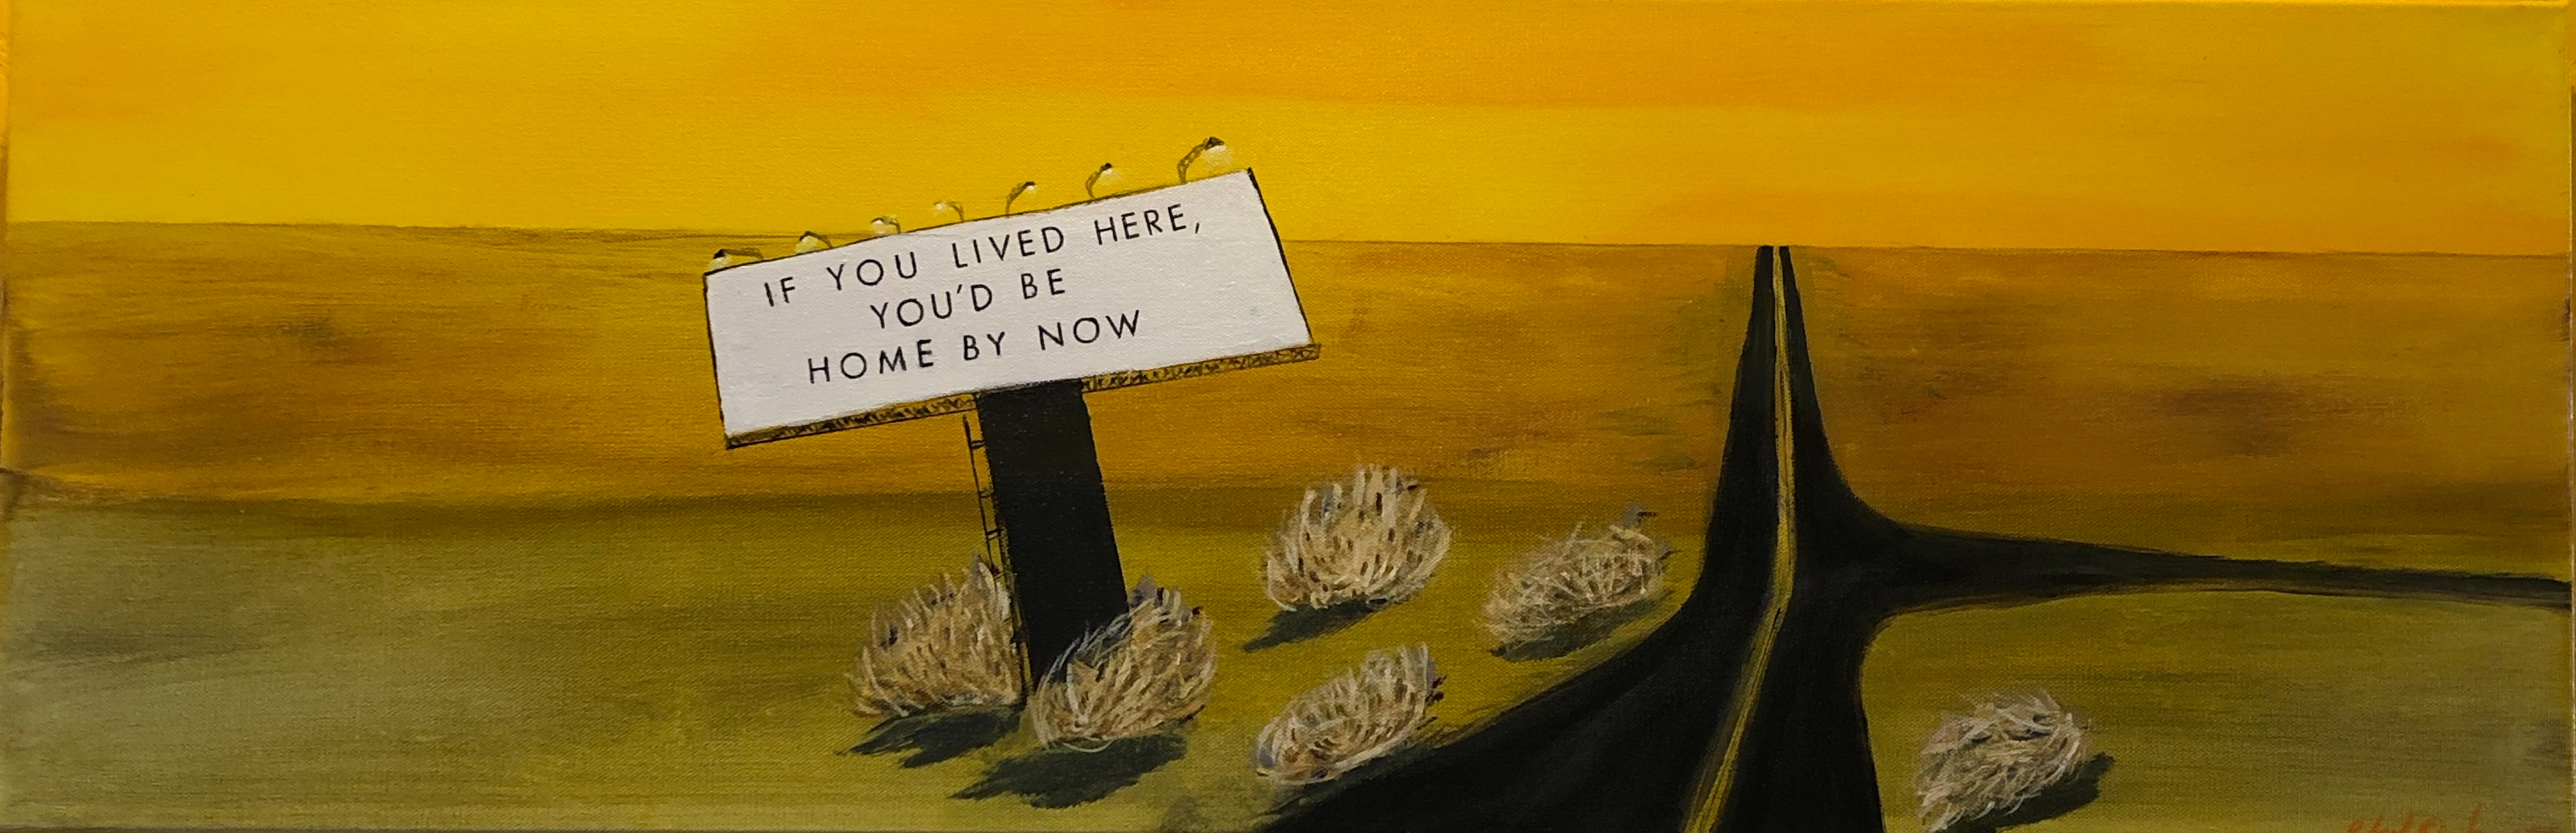 """If You Lived Here, You'd Be Home By Now, 12""""x36"""",$300.00"""